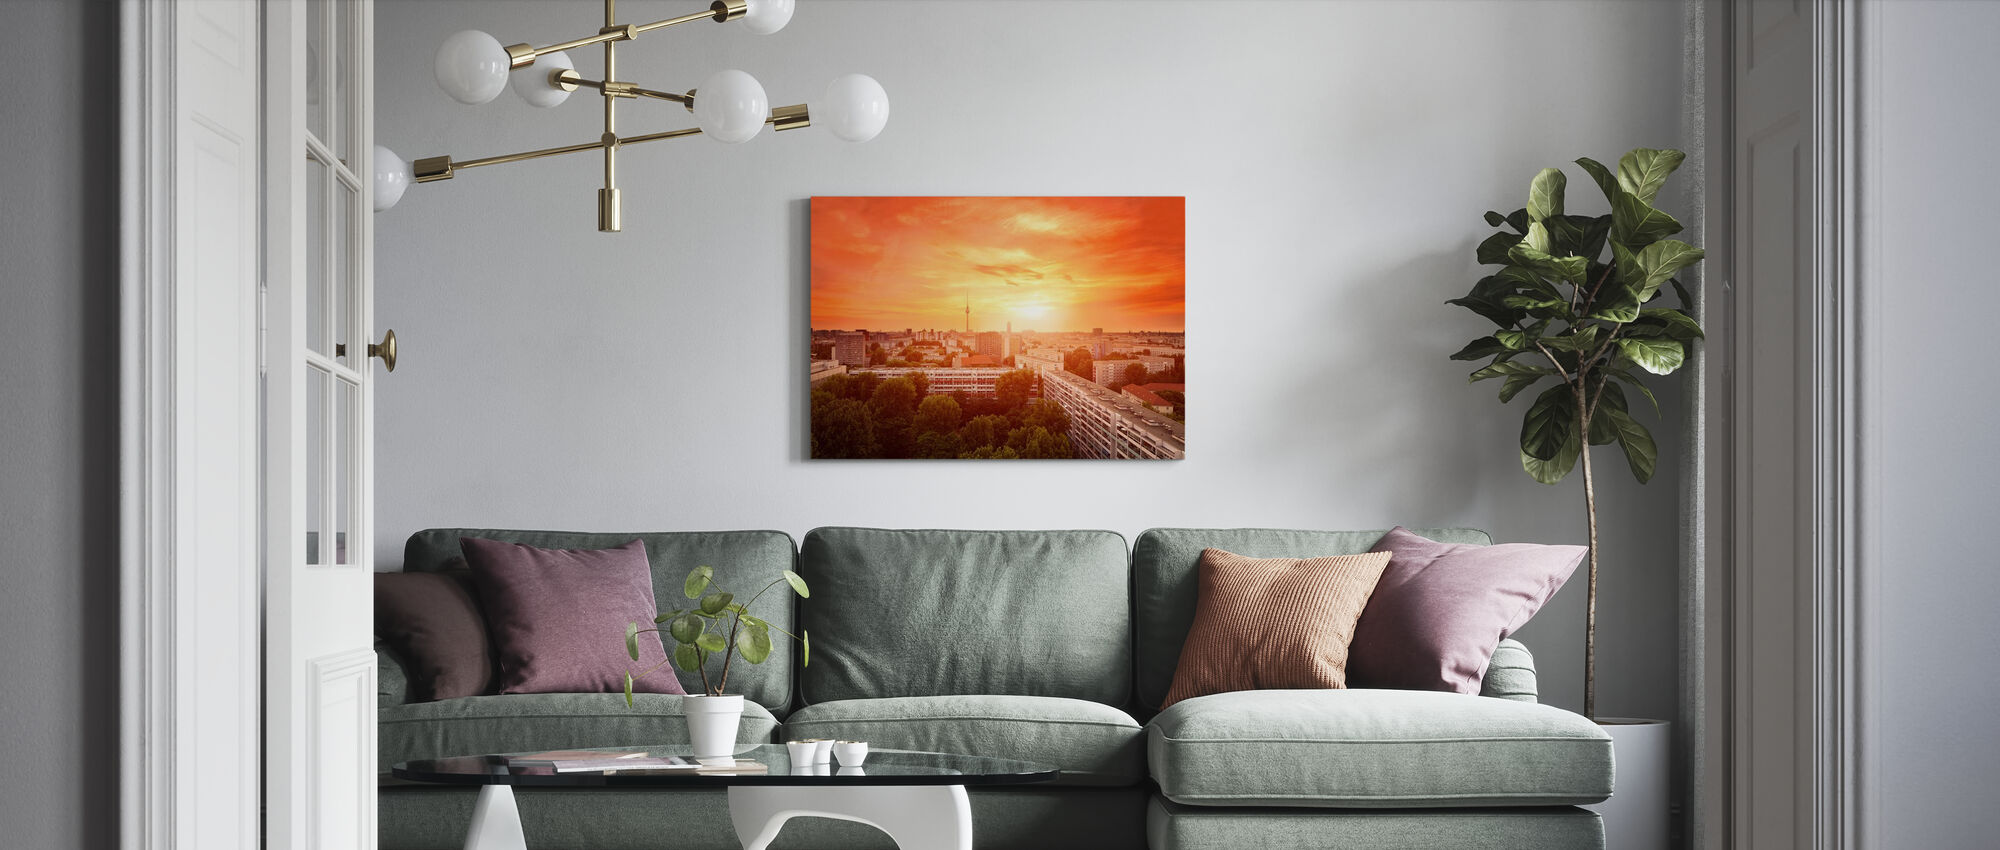 Glowing Sunset over Berlin - Canvas print - Living Room